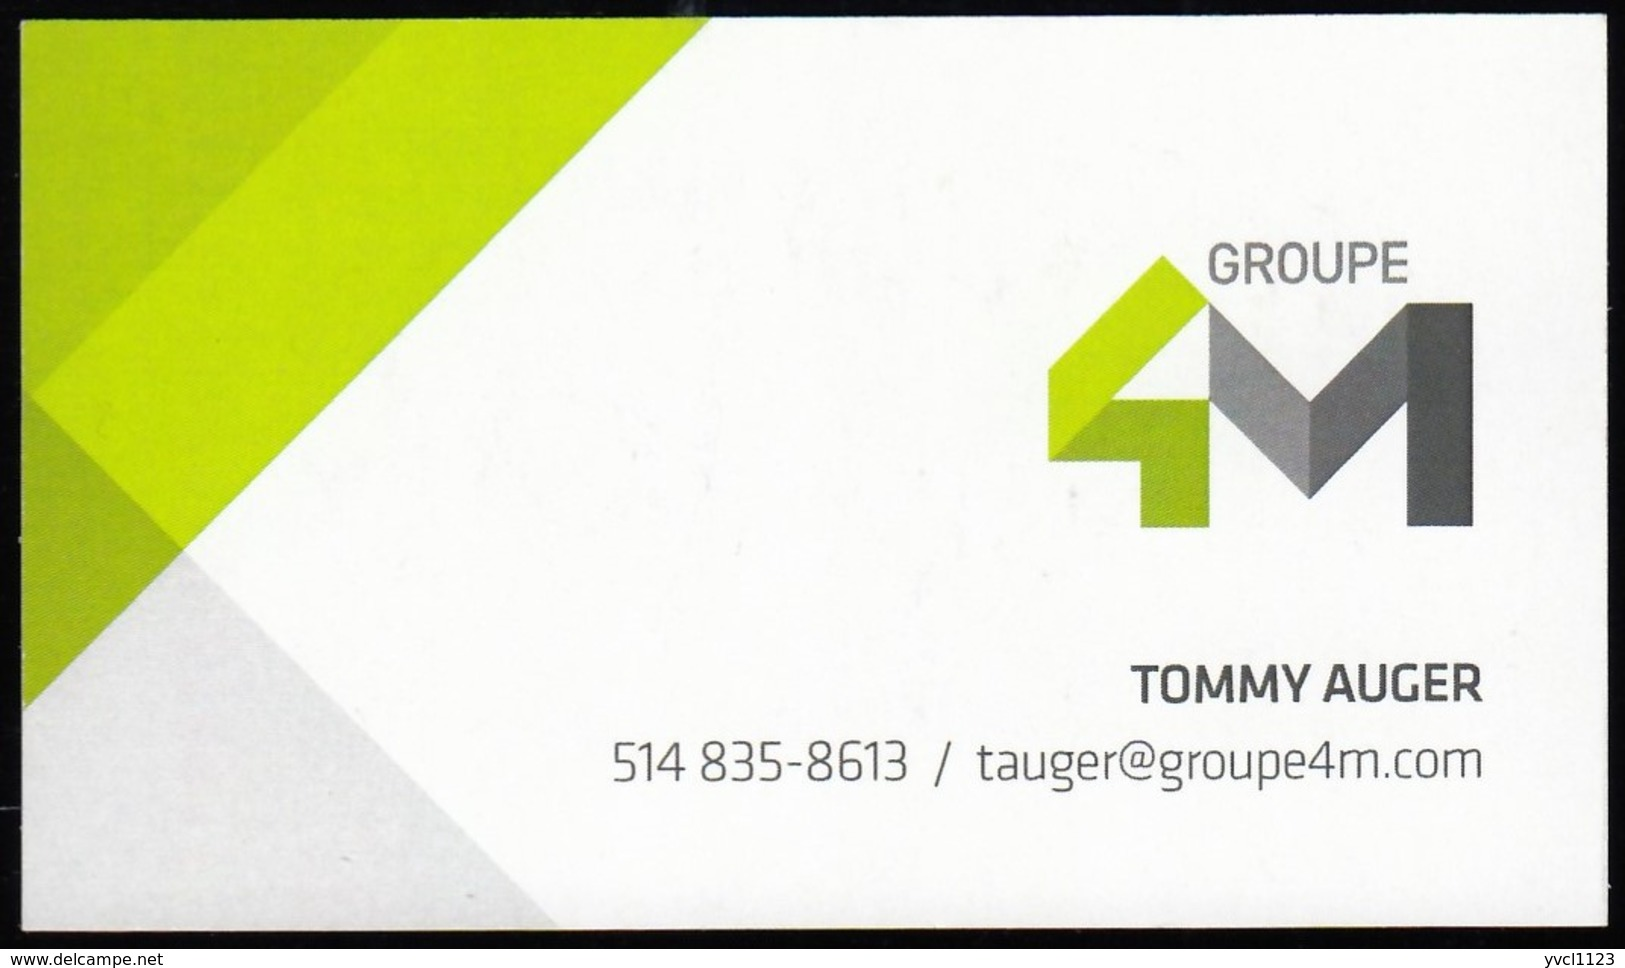 Groupe 4M, Mascouche QC (VC690) - Visiting Cards